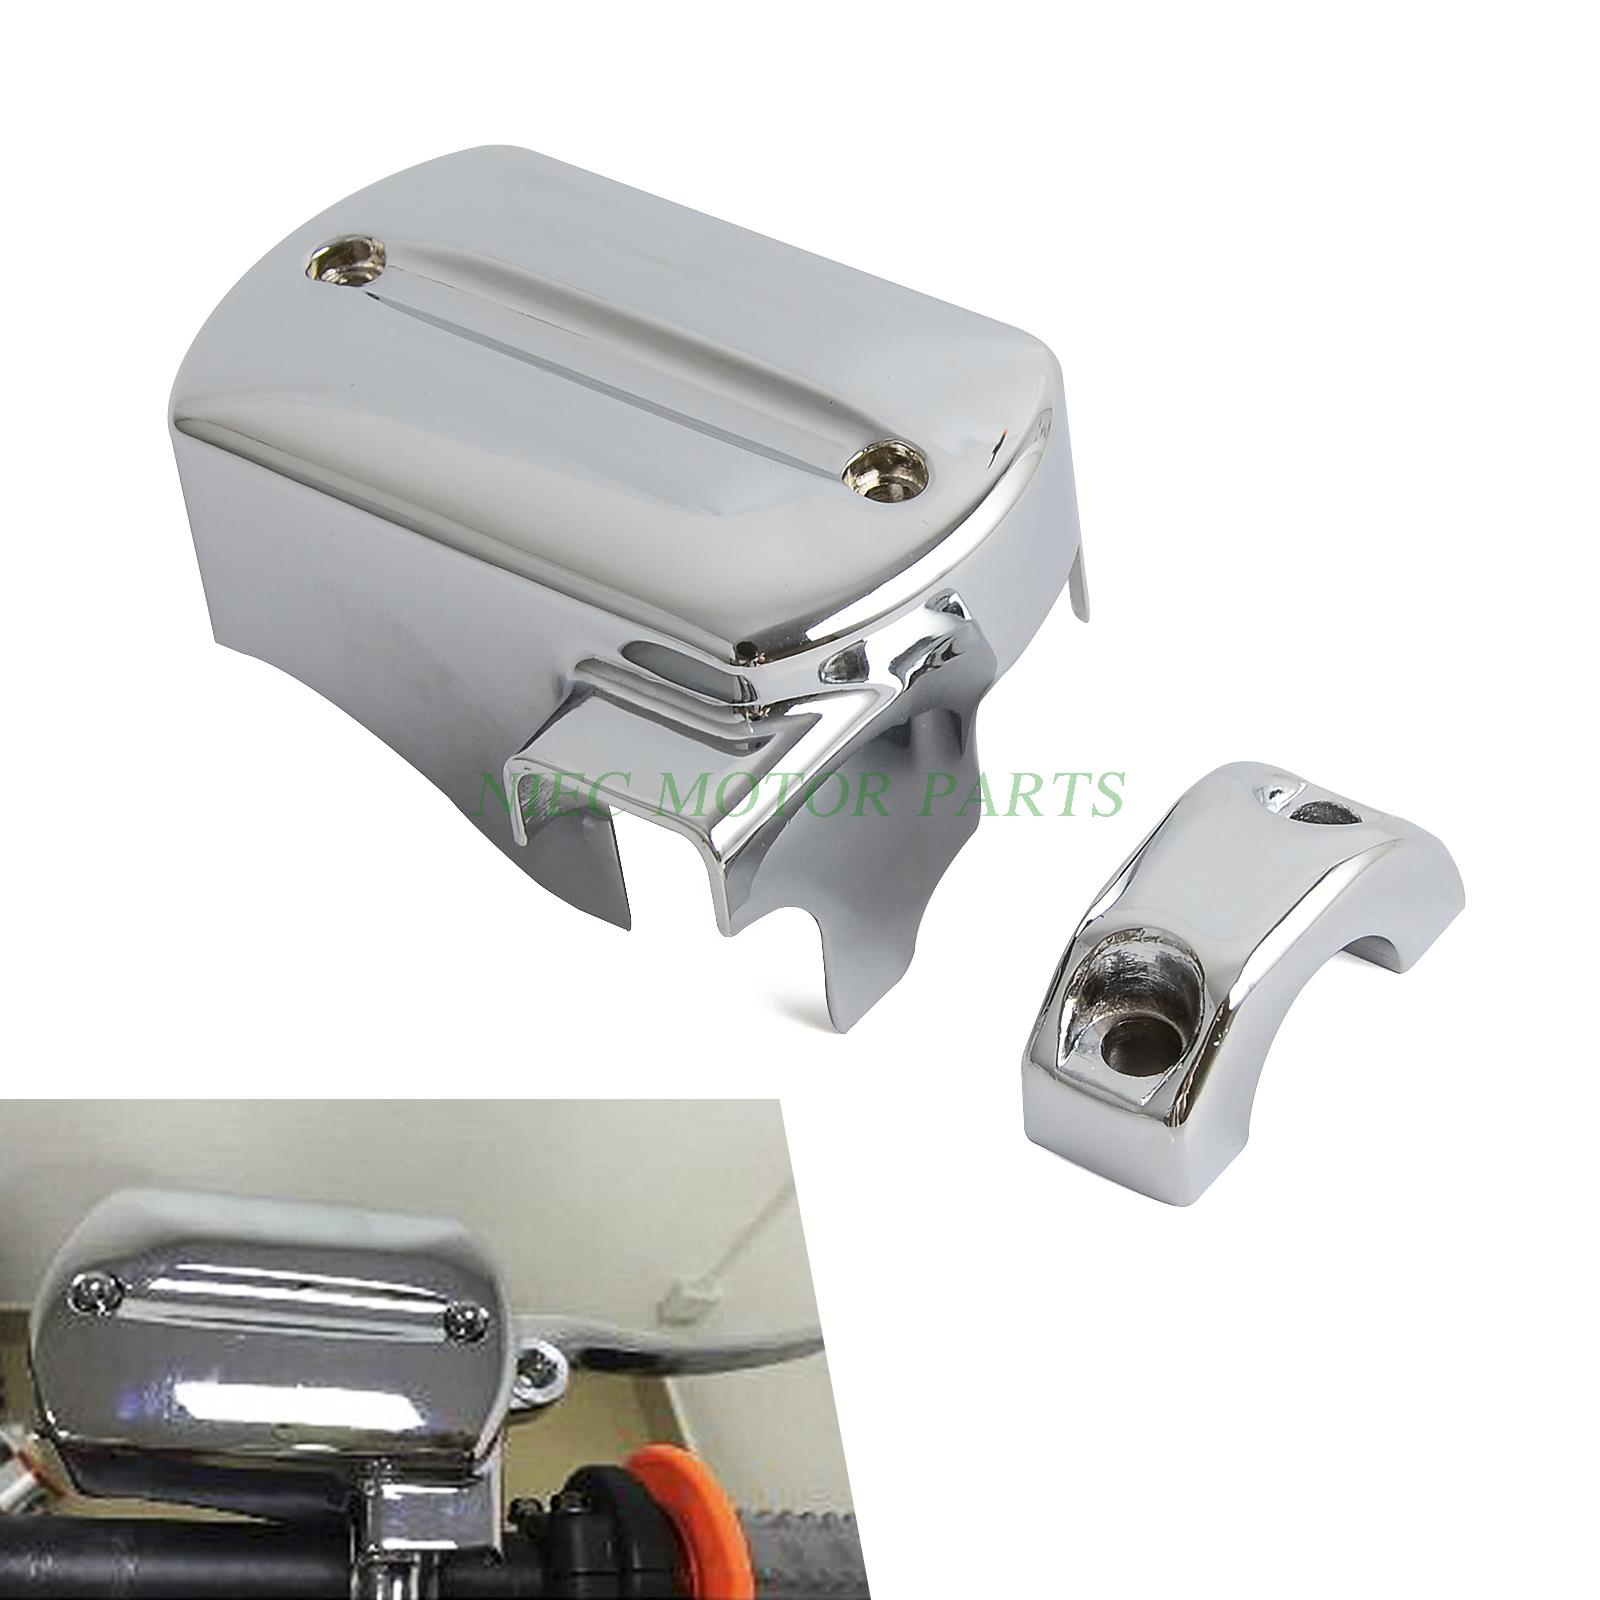 Motorcycle Chrome Brake Master Cylinder Cover For Yamaha V-Star 650/1100 1998-2007 стоимость